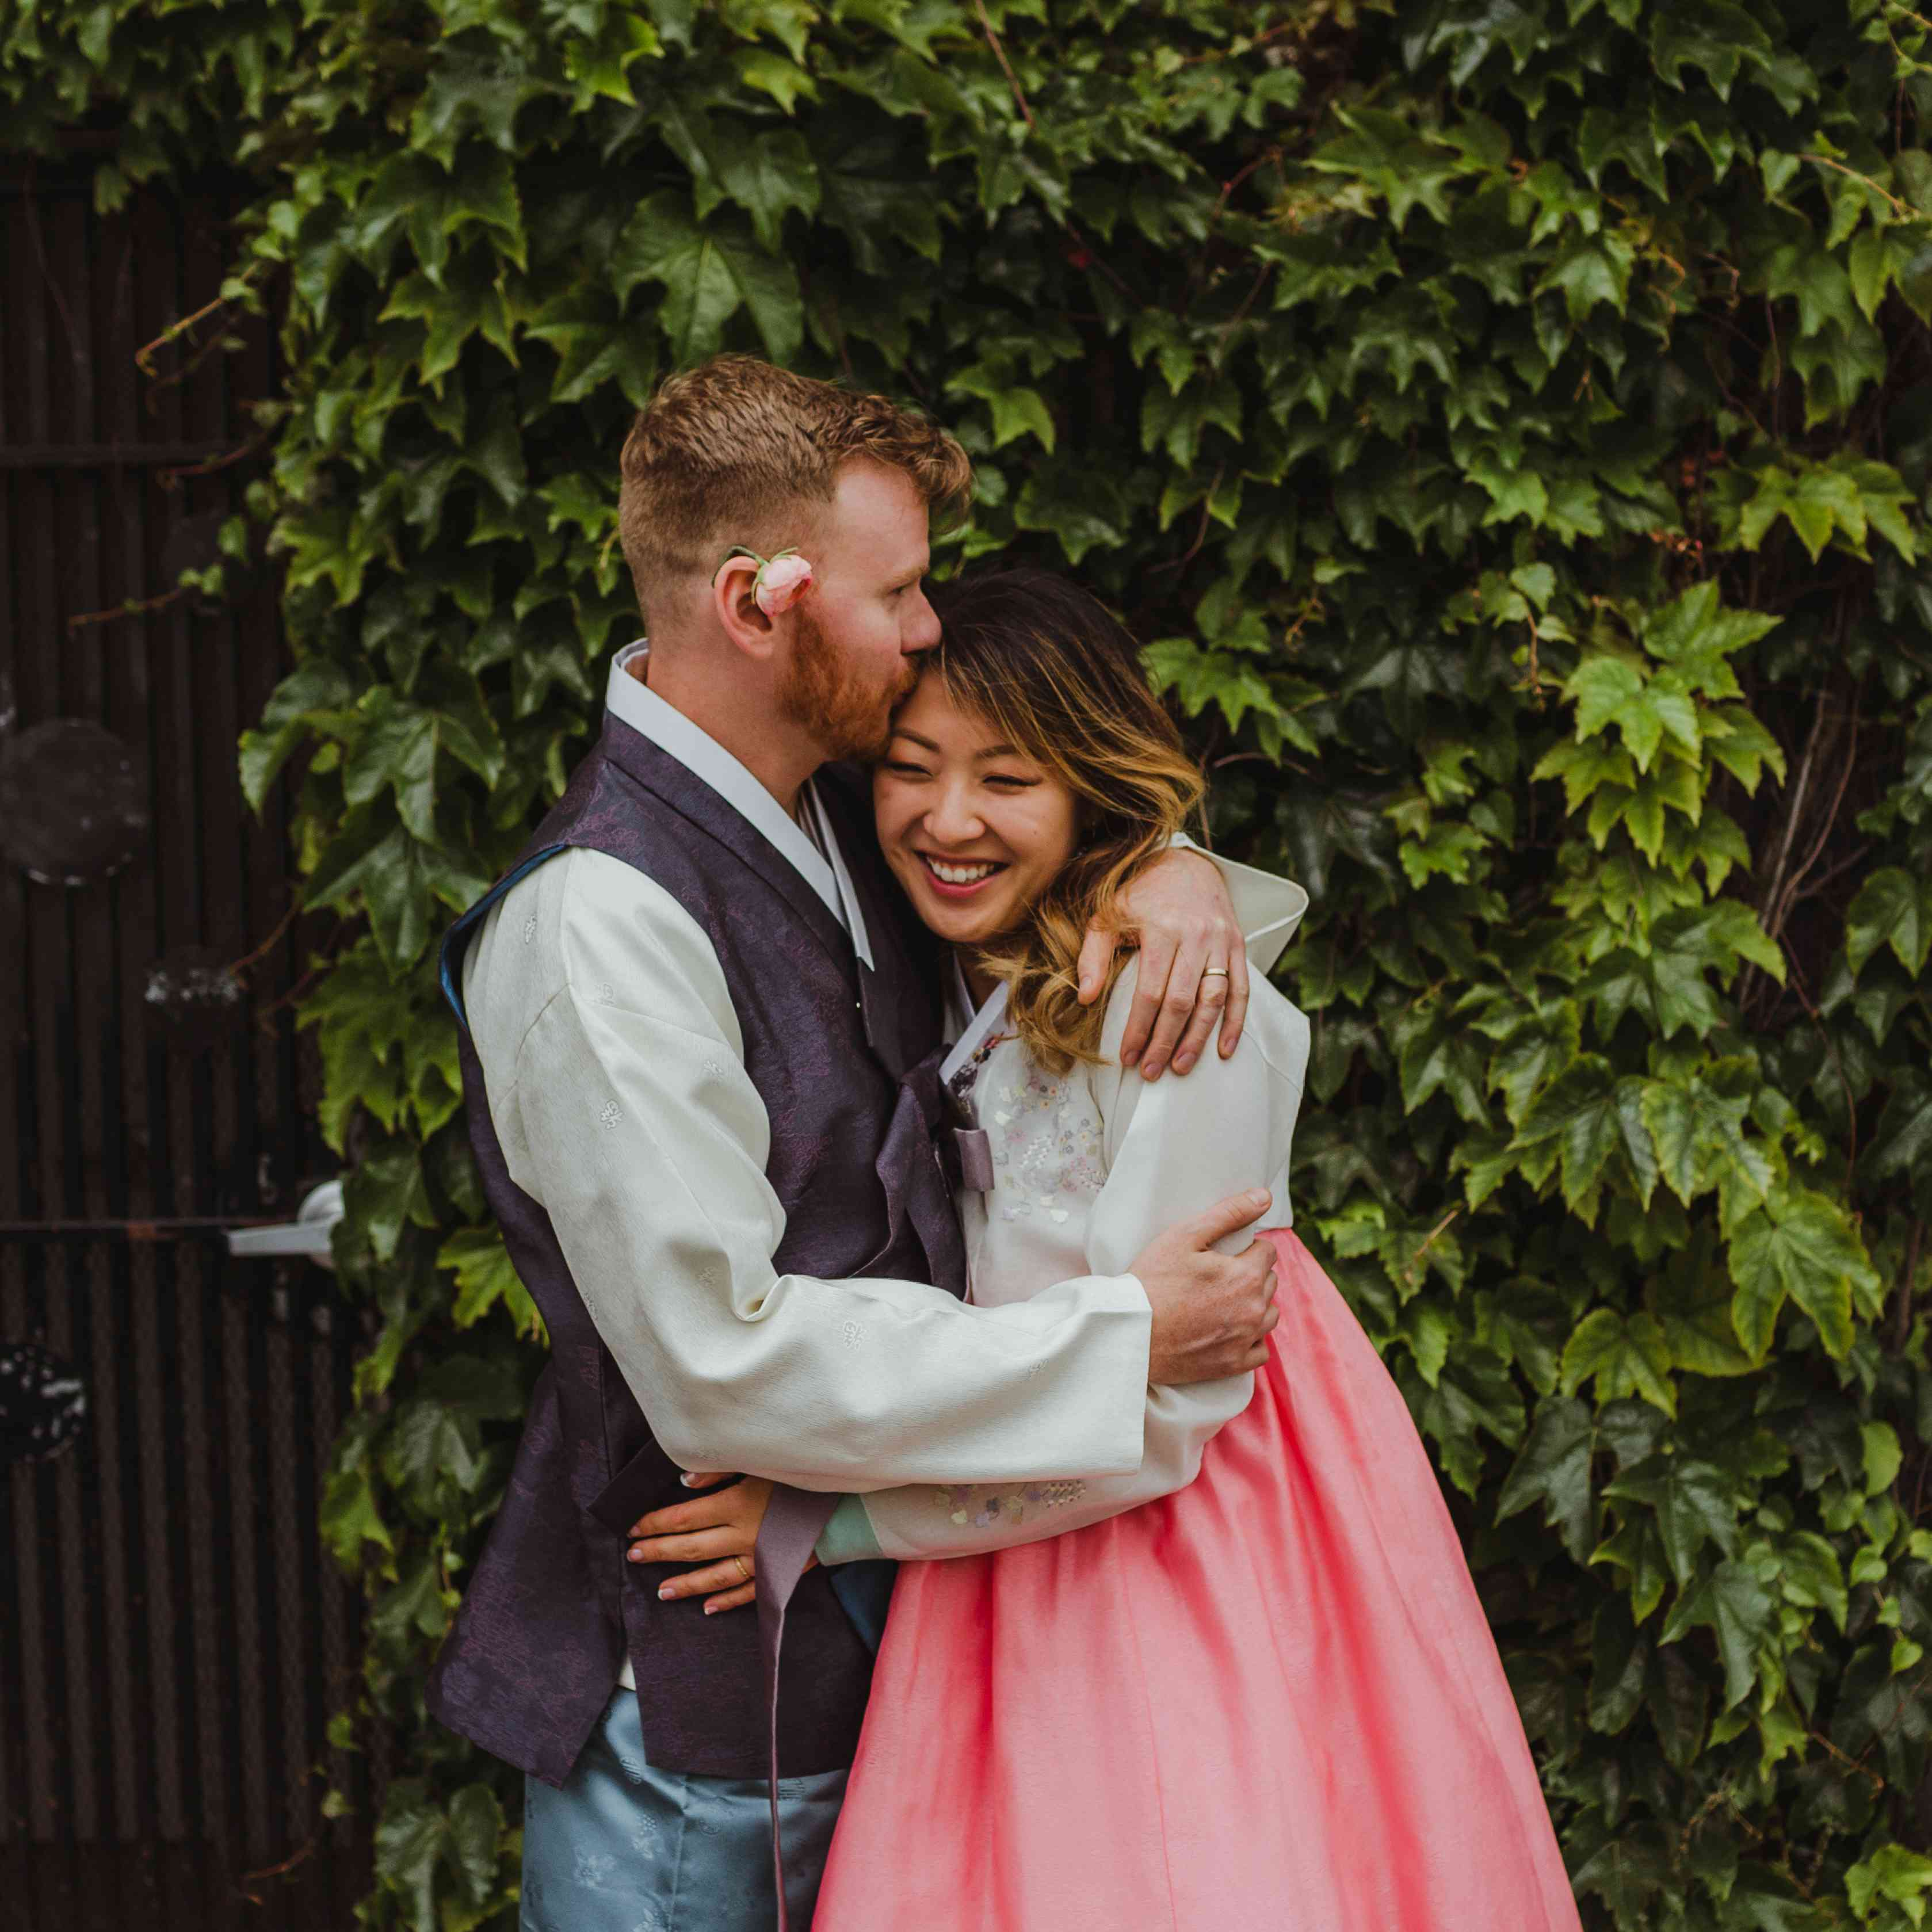 <p>Bride and groom hugging</p><br><br>